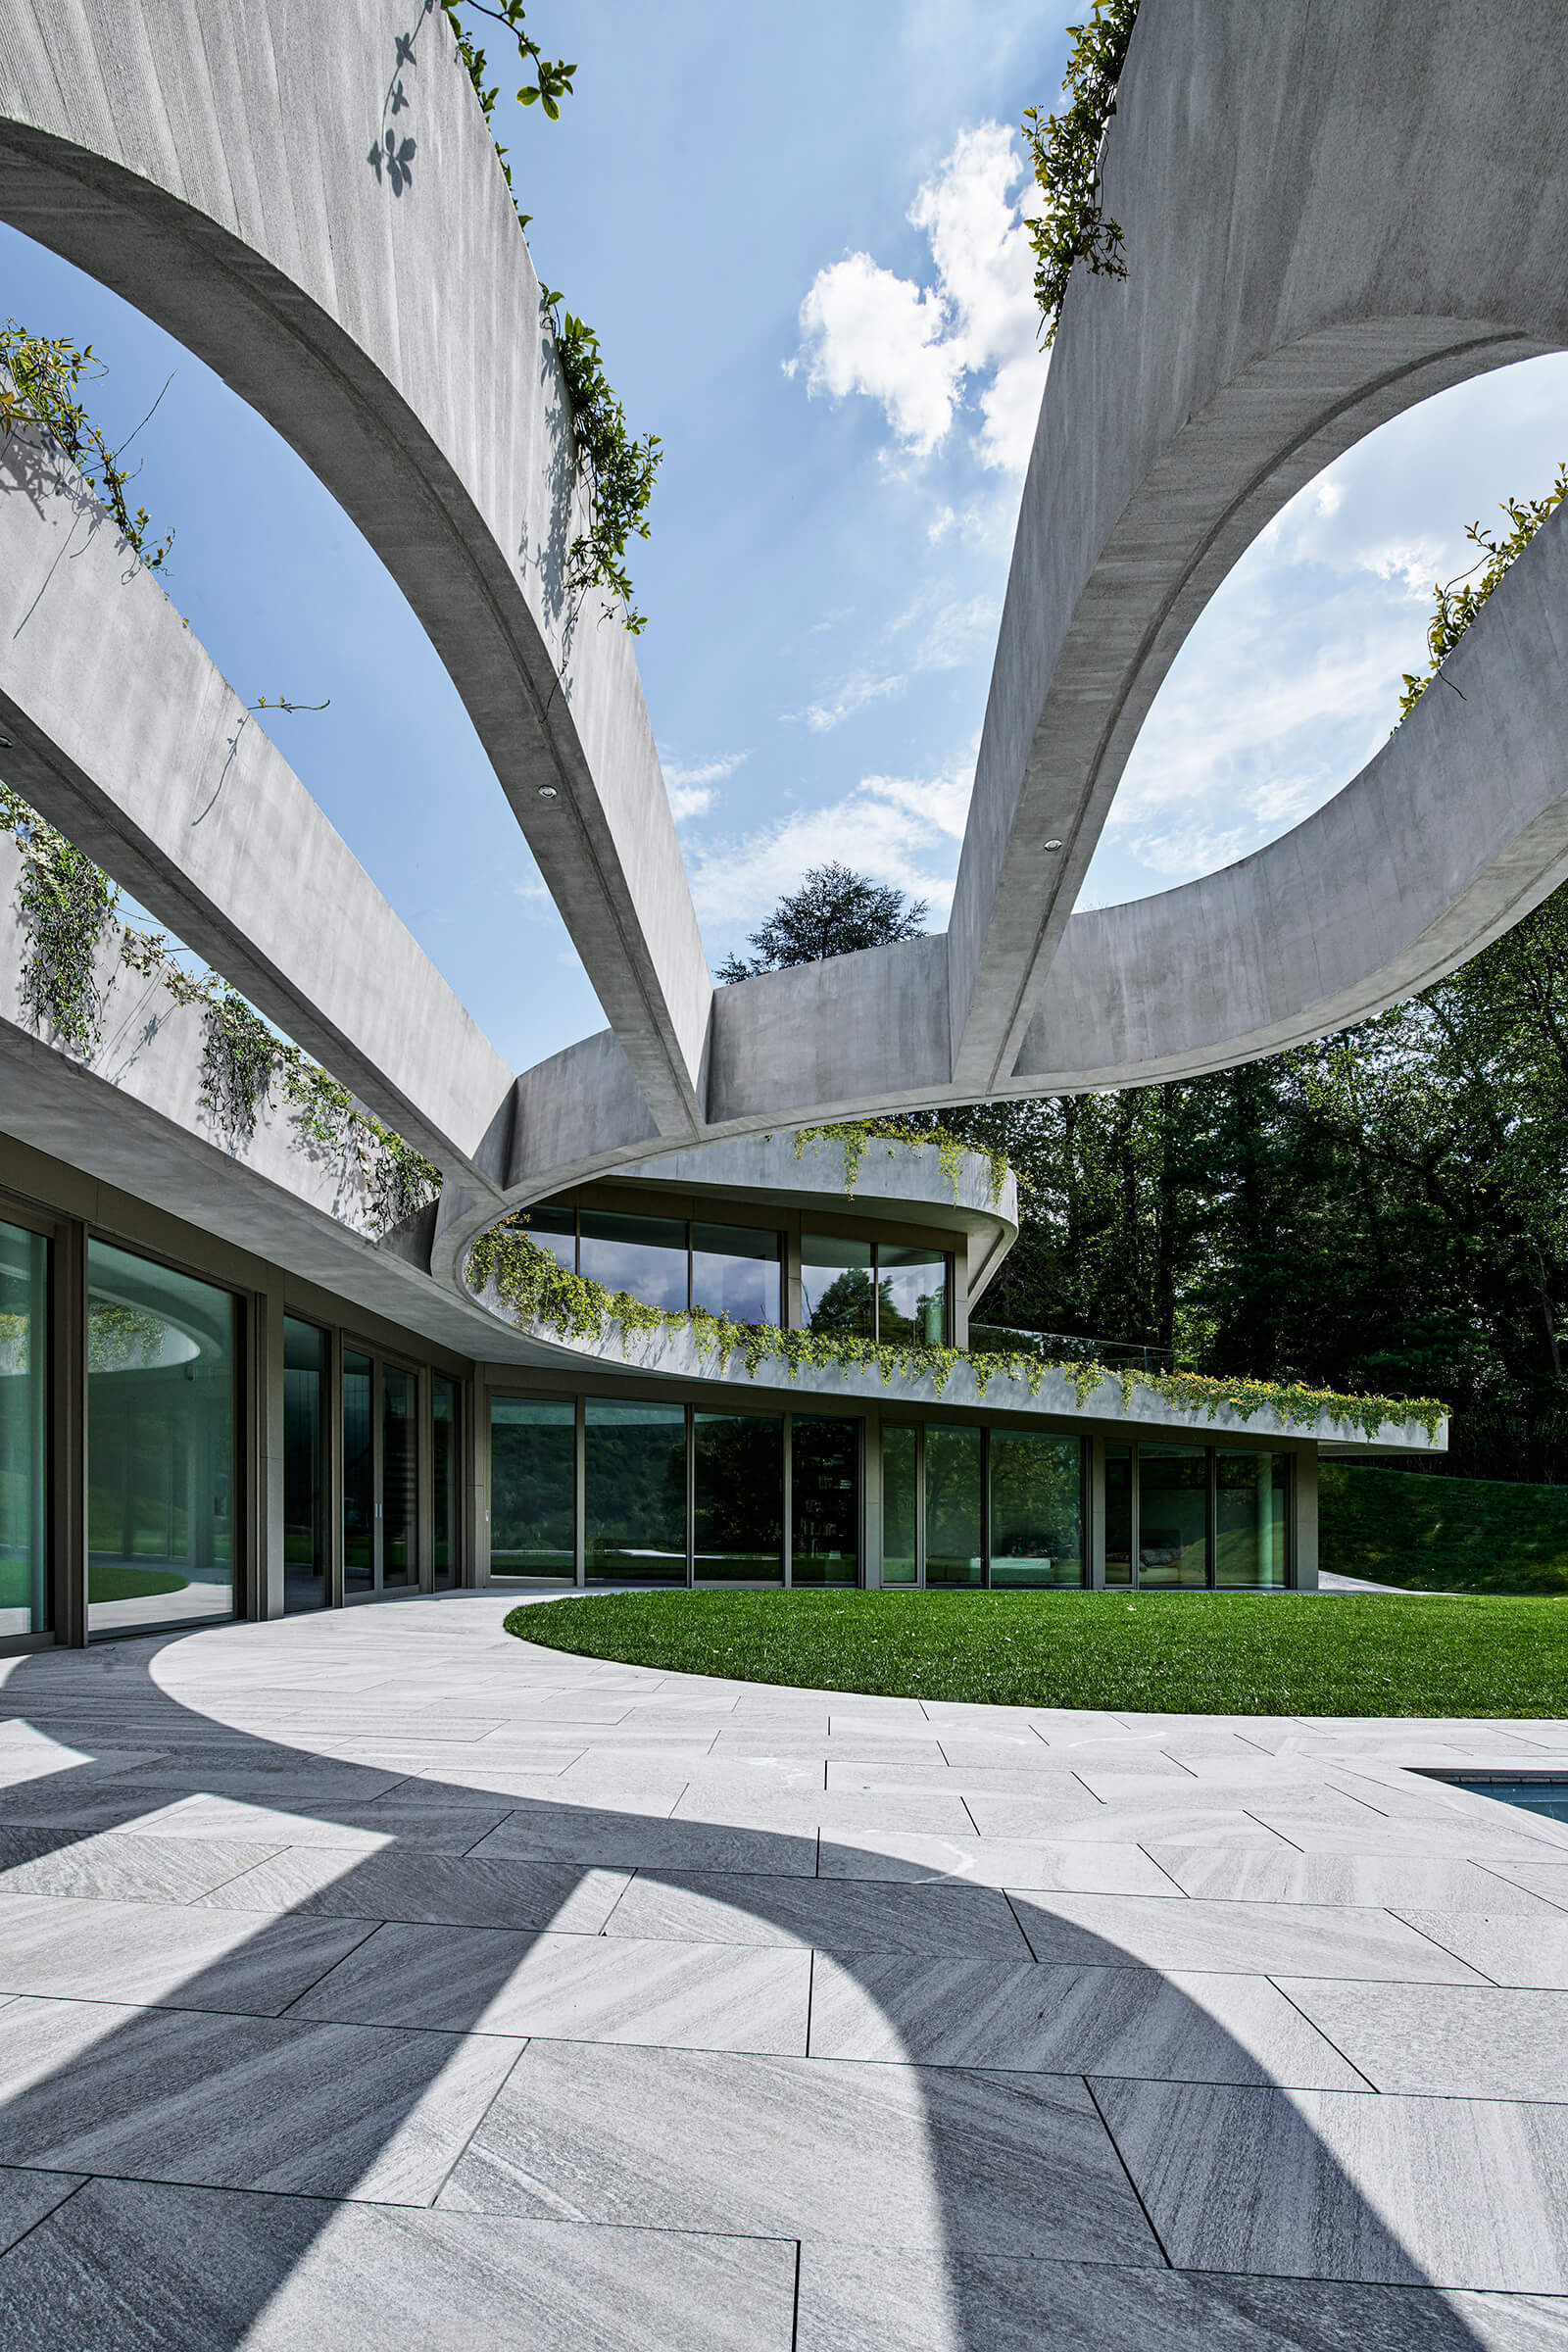 Sweeping curves defining Atelier Alice Trepp's organic shape | Atelier Alice Trepp by Mino Caggiula Architects | STIRworld